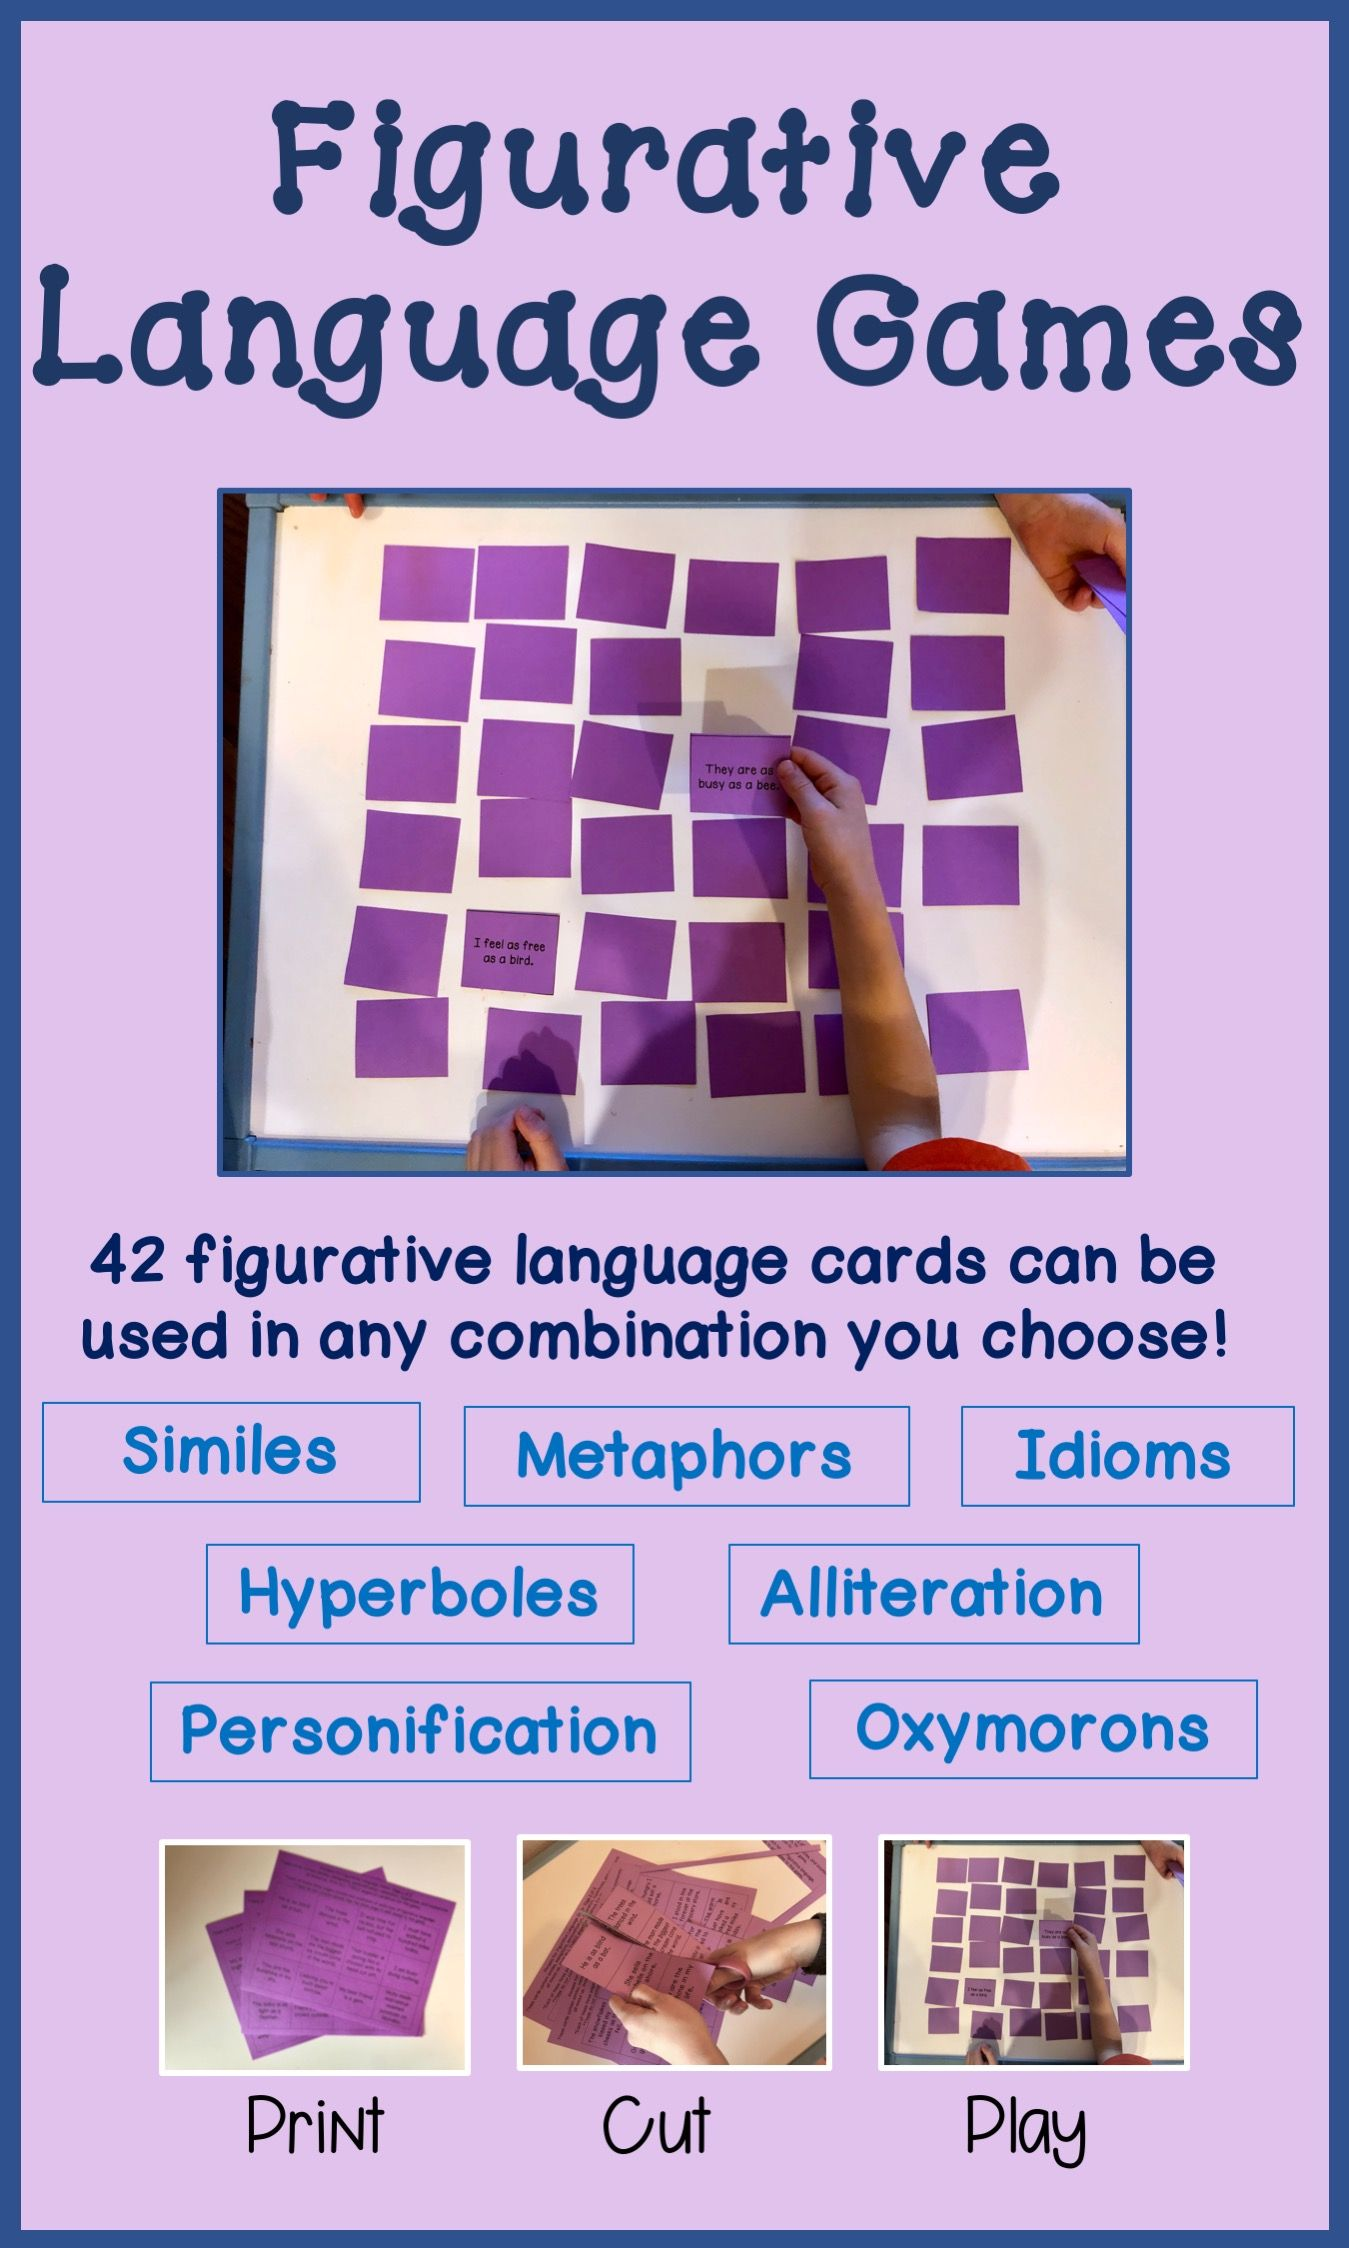 Figurative Language Games With Images